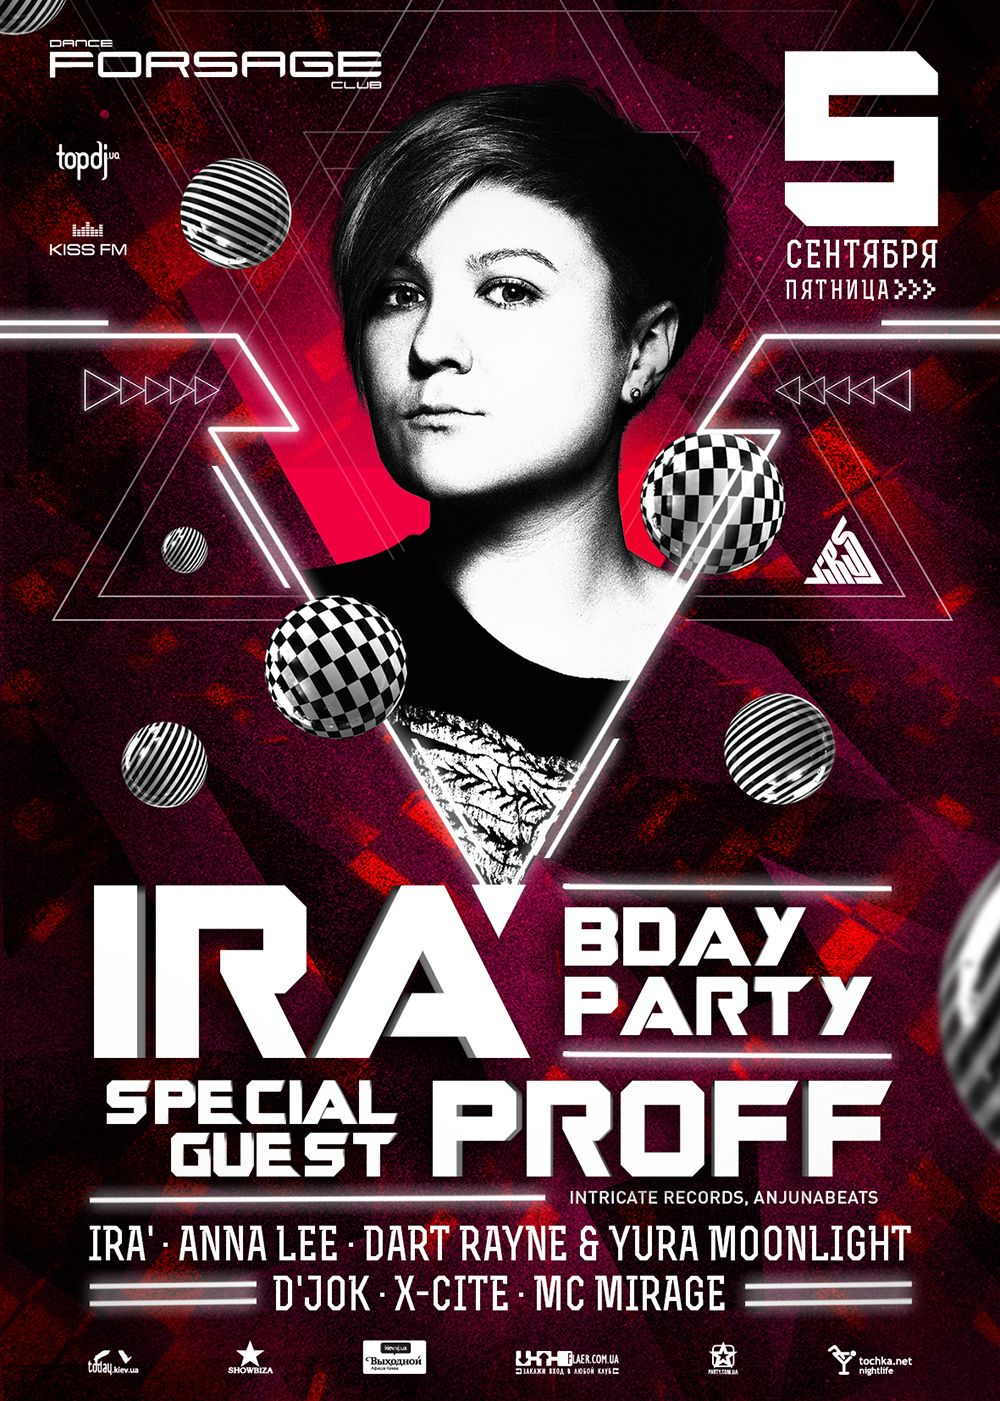 DJ IRA birthday party poster design #edm #poster #design #trance